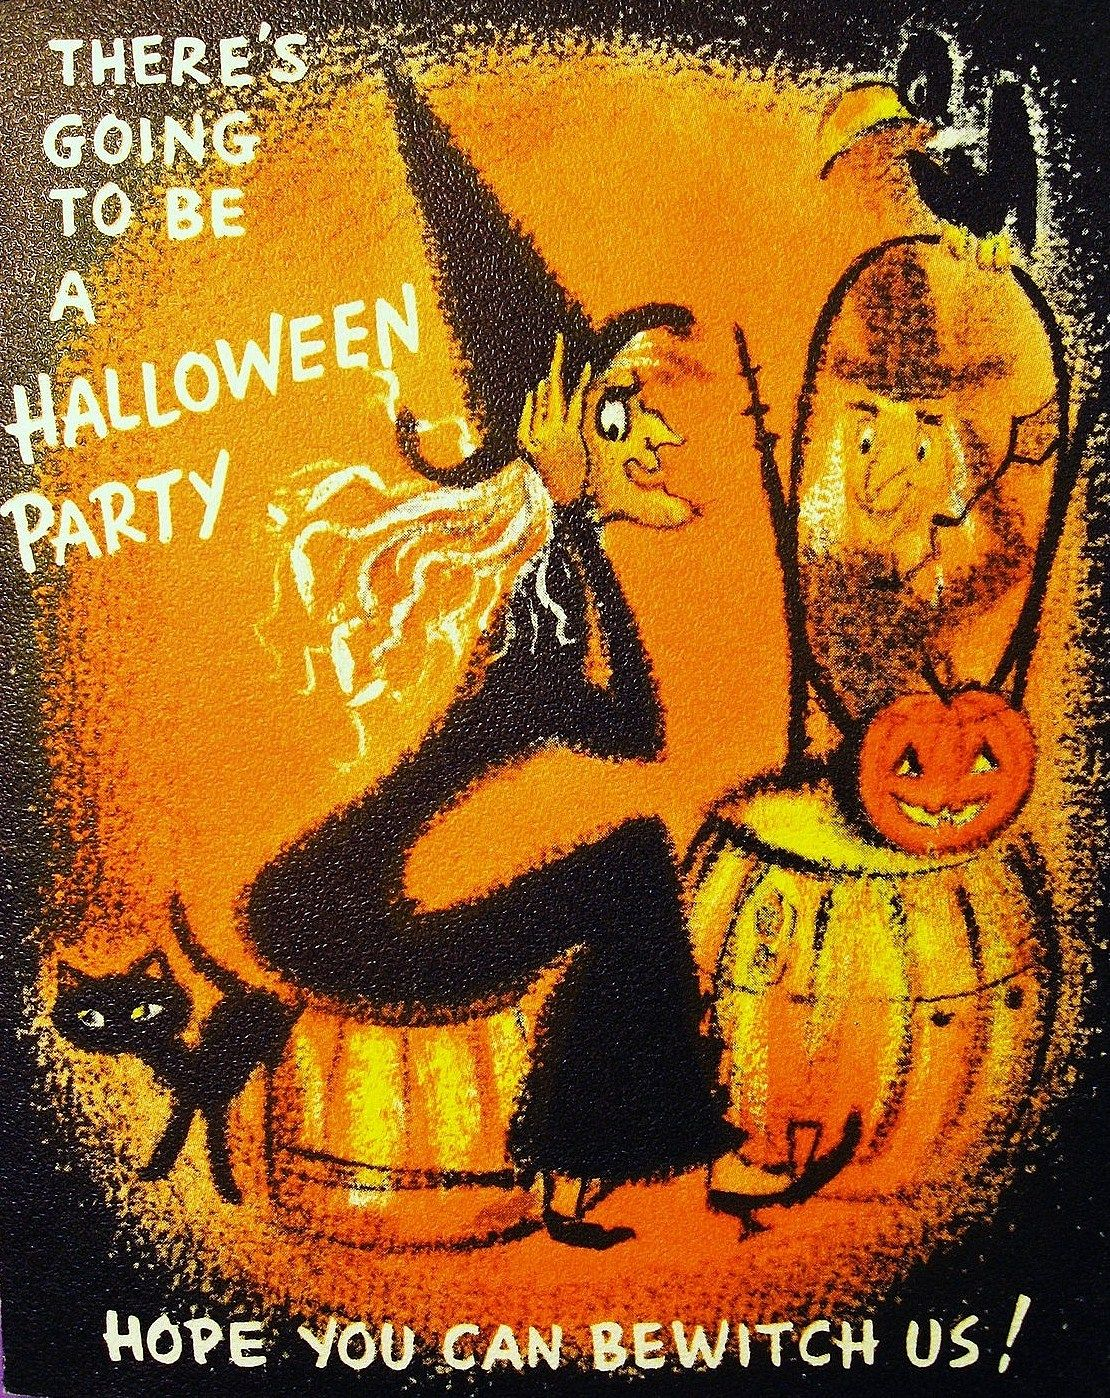 Vintage Halloween Party Card Oh I LOVE The Kitschy Witchy Graphics That Cat Is